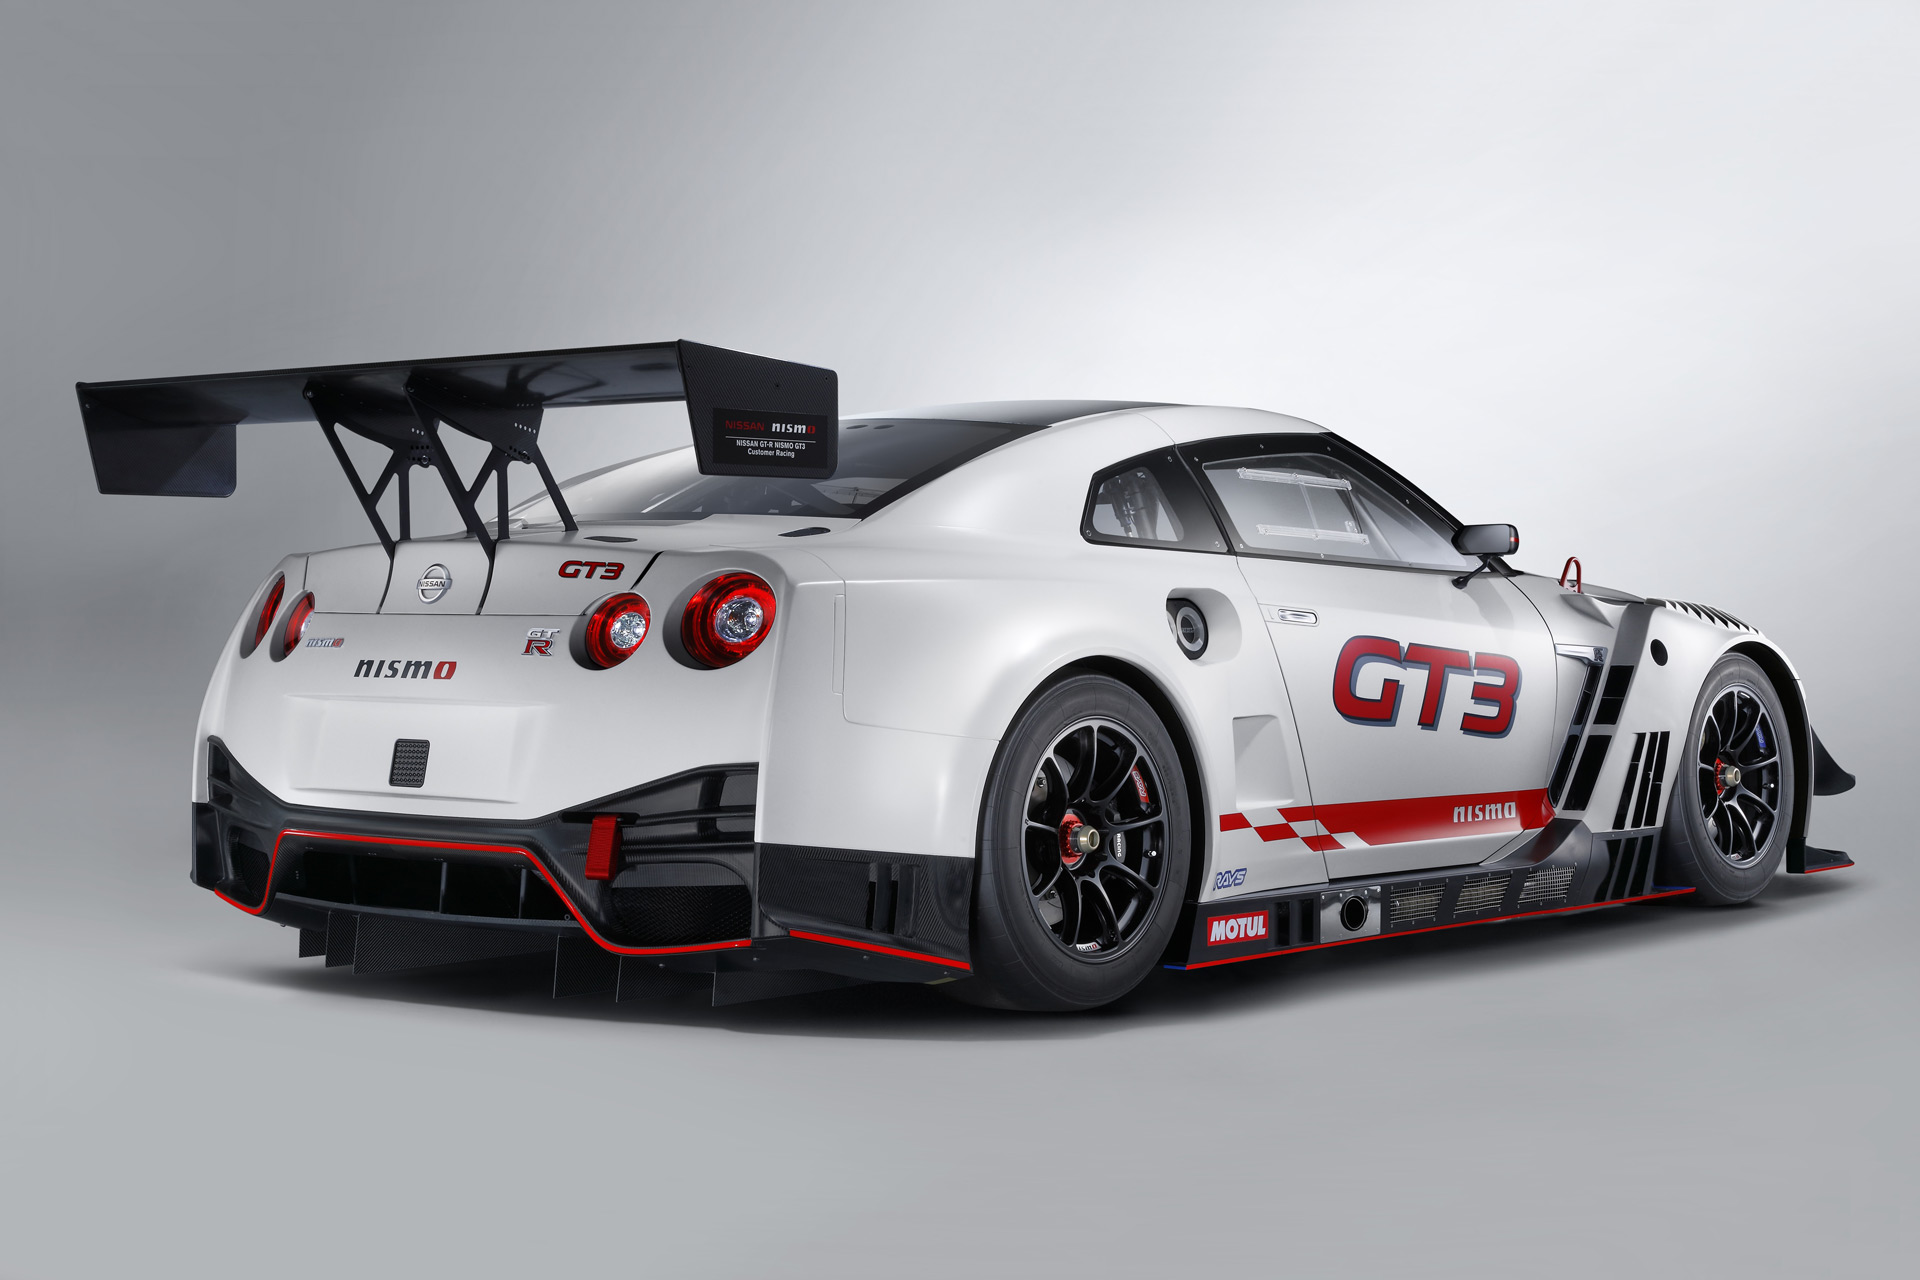 77 A 2019 Nissan Gt R Nismo Exterior and Interior